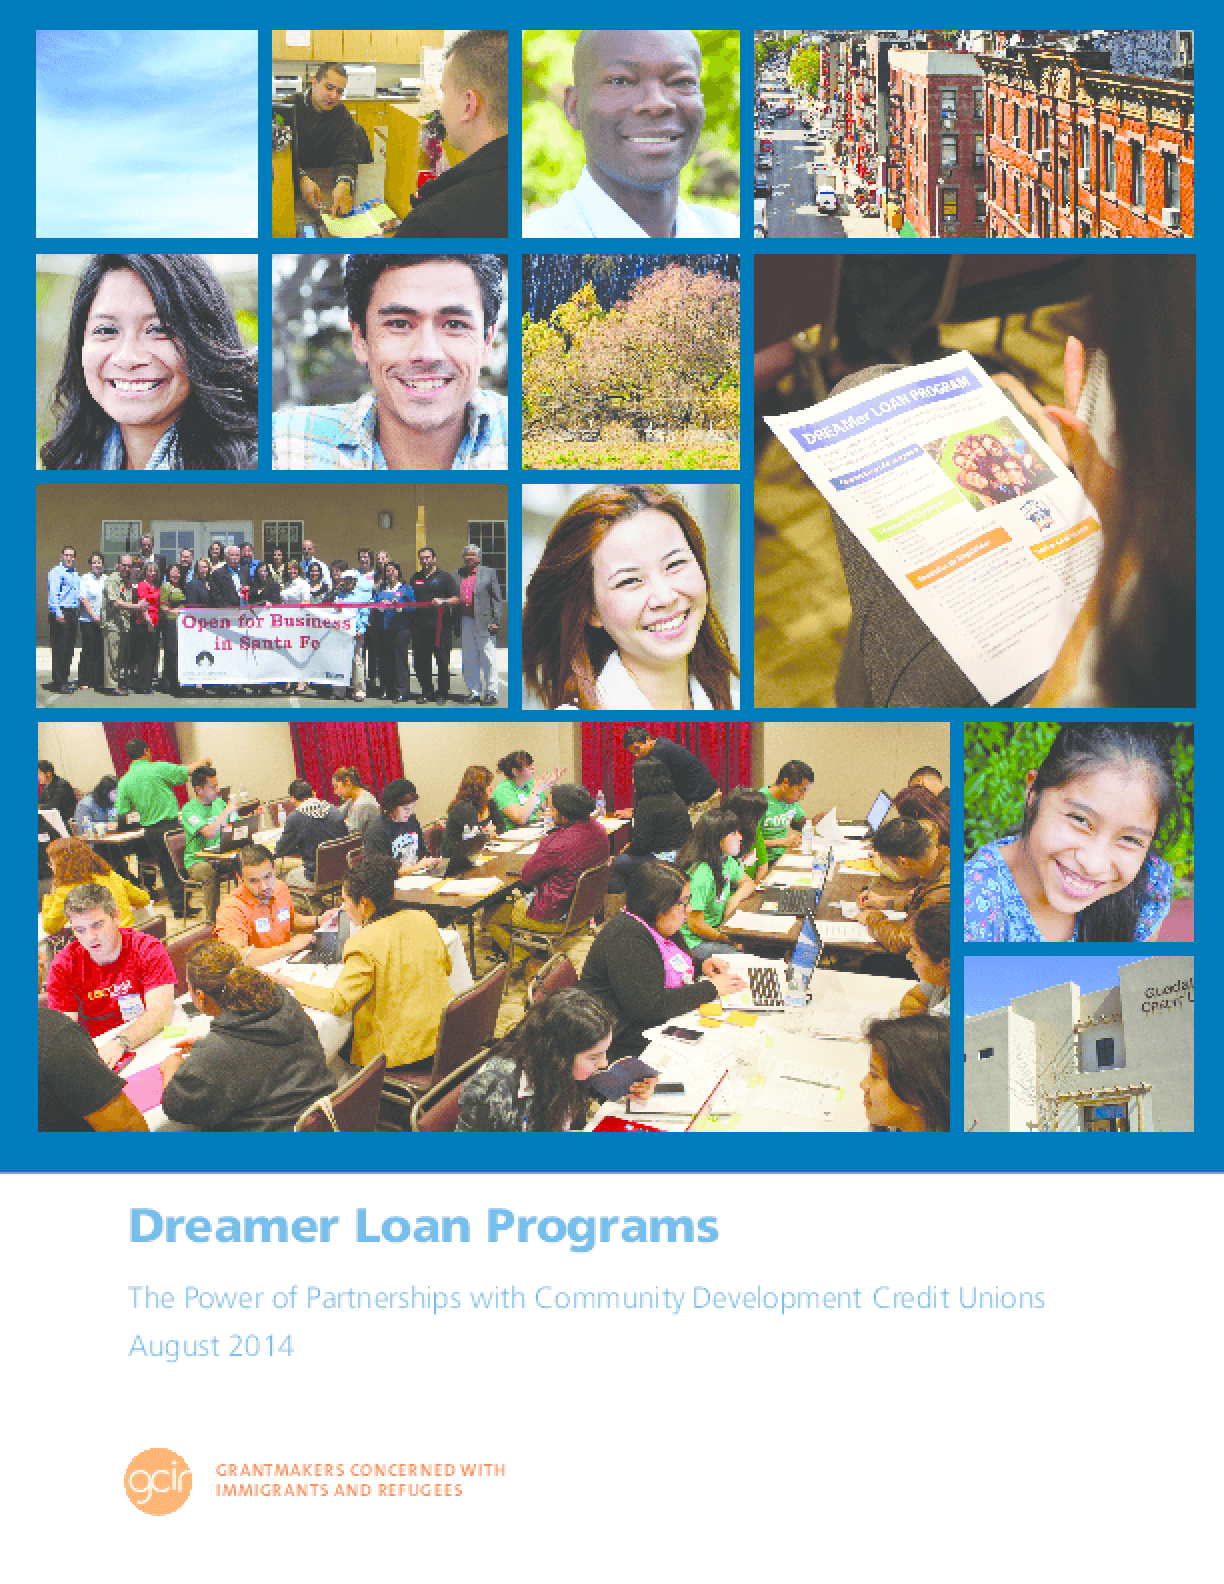 Dreamer Loan Programs: The Power of Partnerships with Community Development Credit Unions